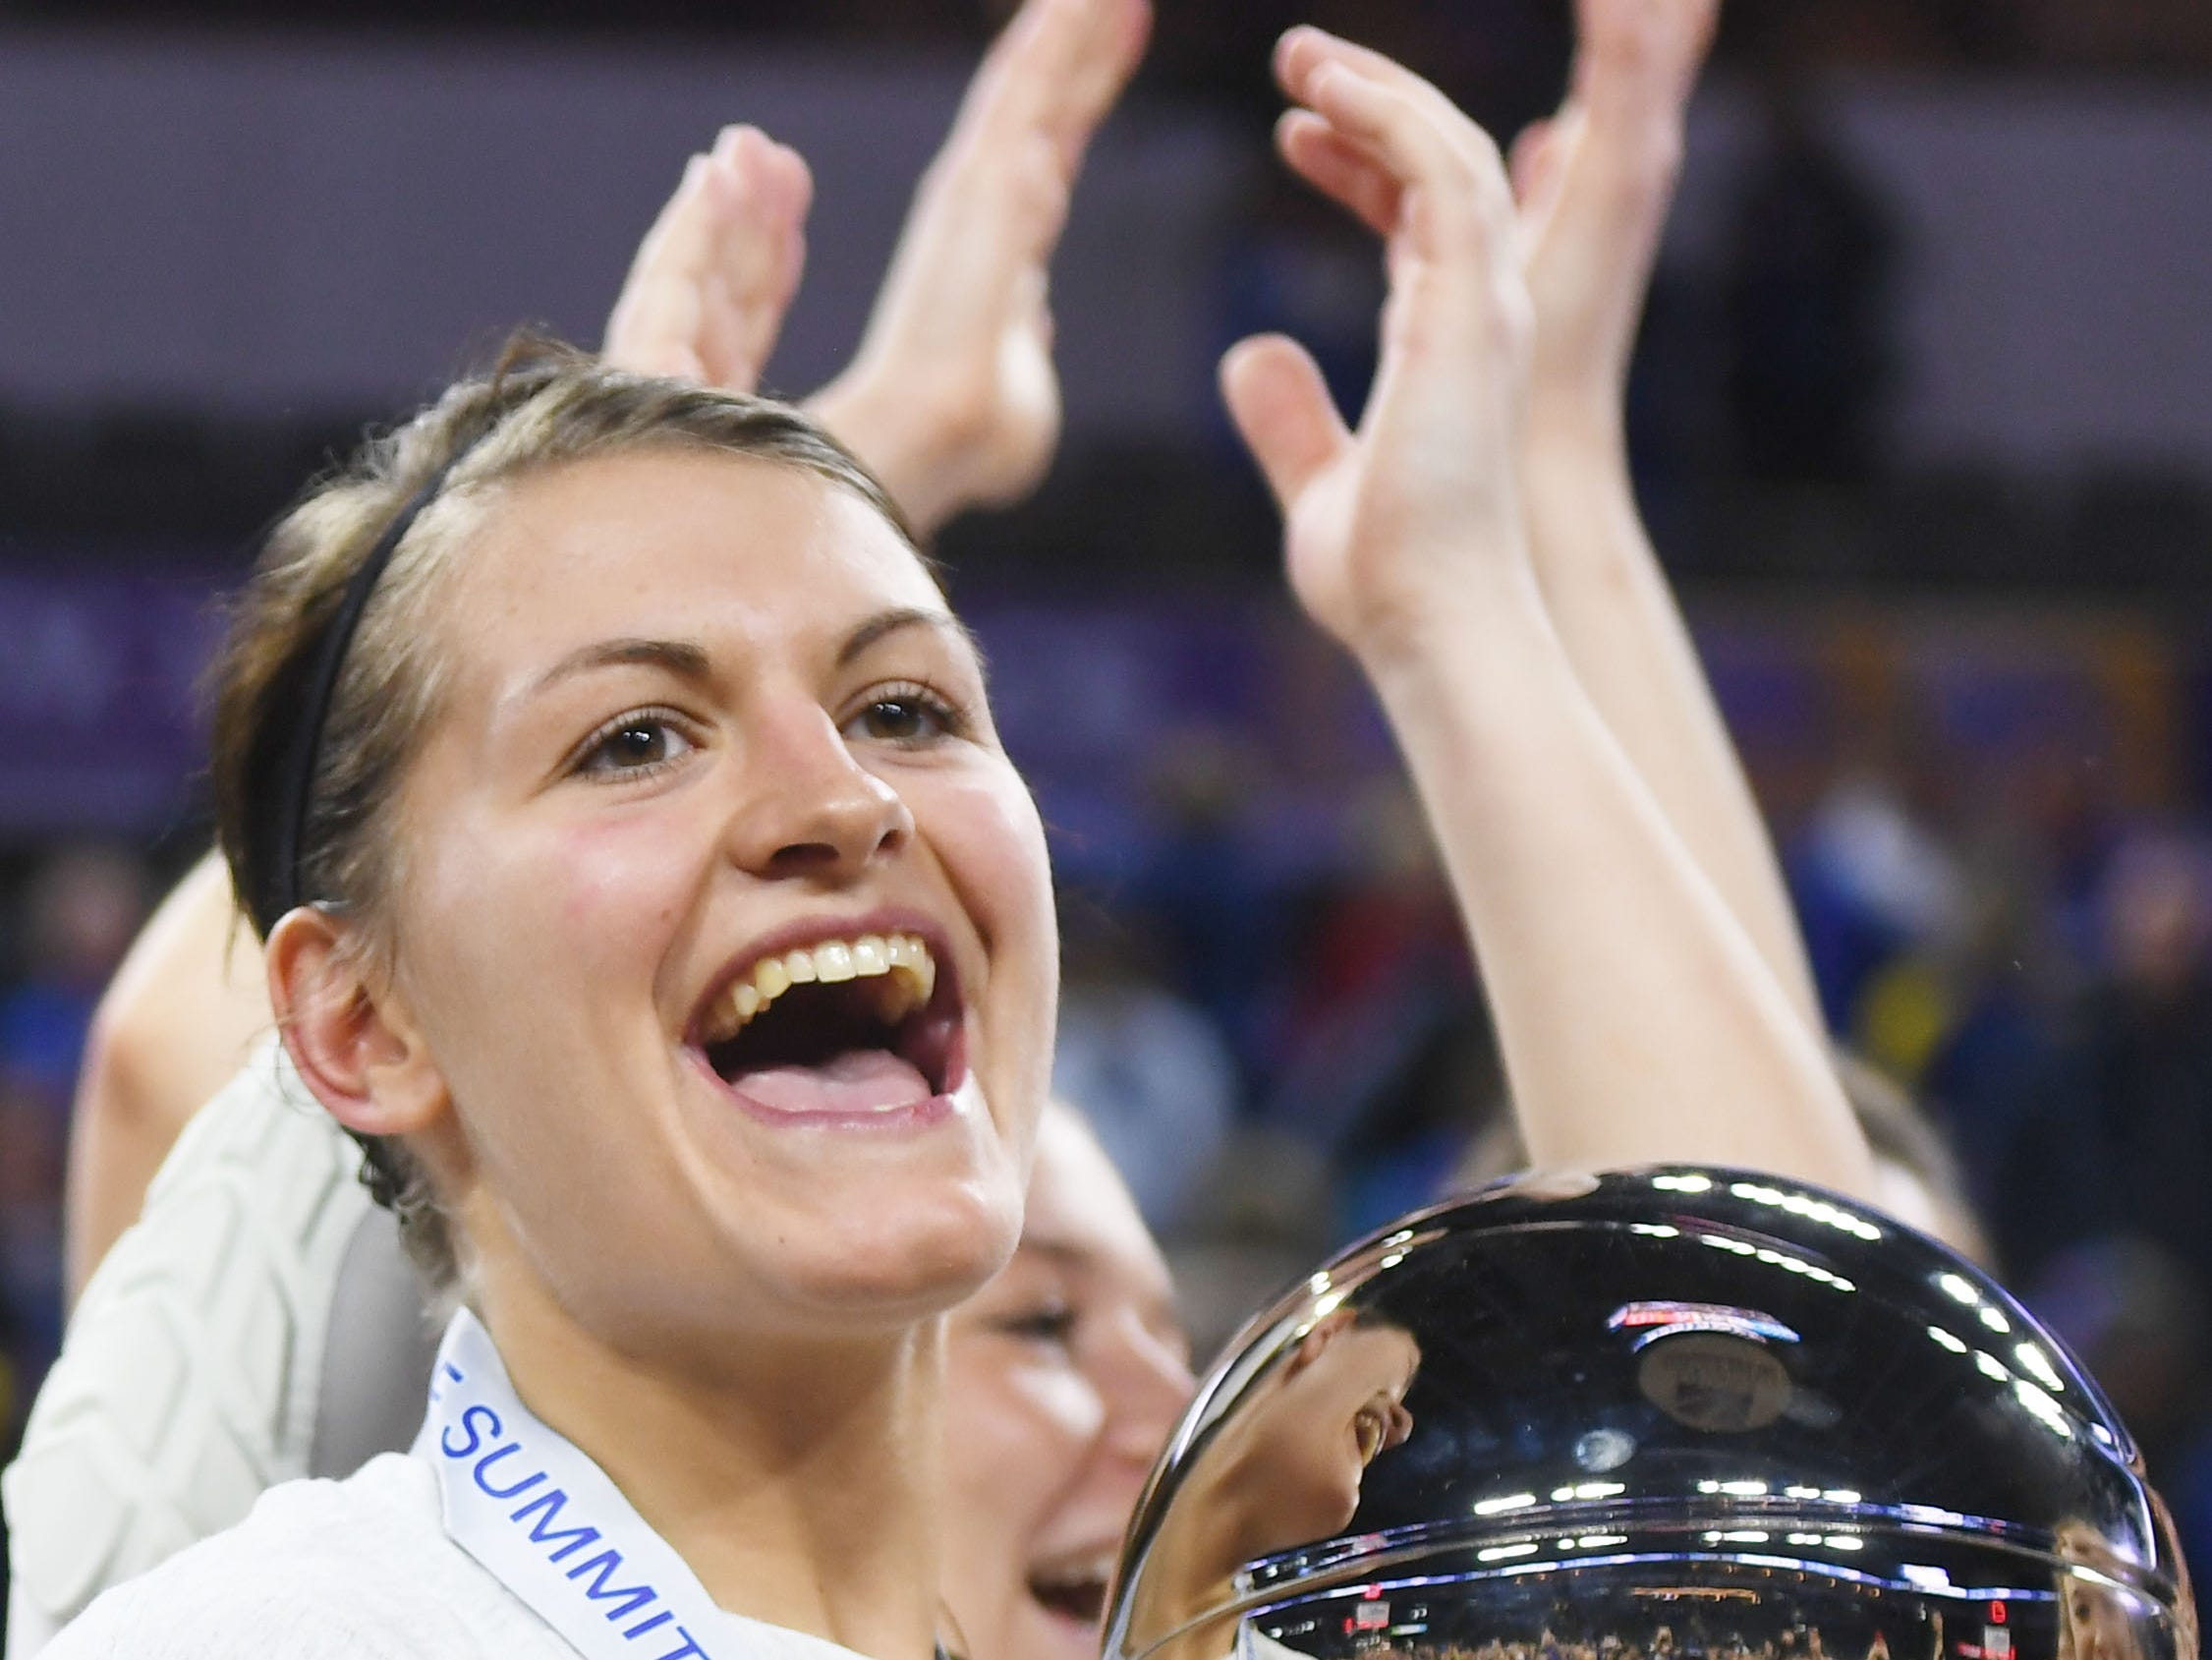 SDSU's Macy Miller holds the trophy after their win against USD Tuesday, March 12, in the Summit League women's championship at the Denny Sanford Premier Center in Sioux Falls.